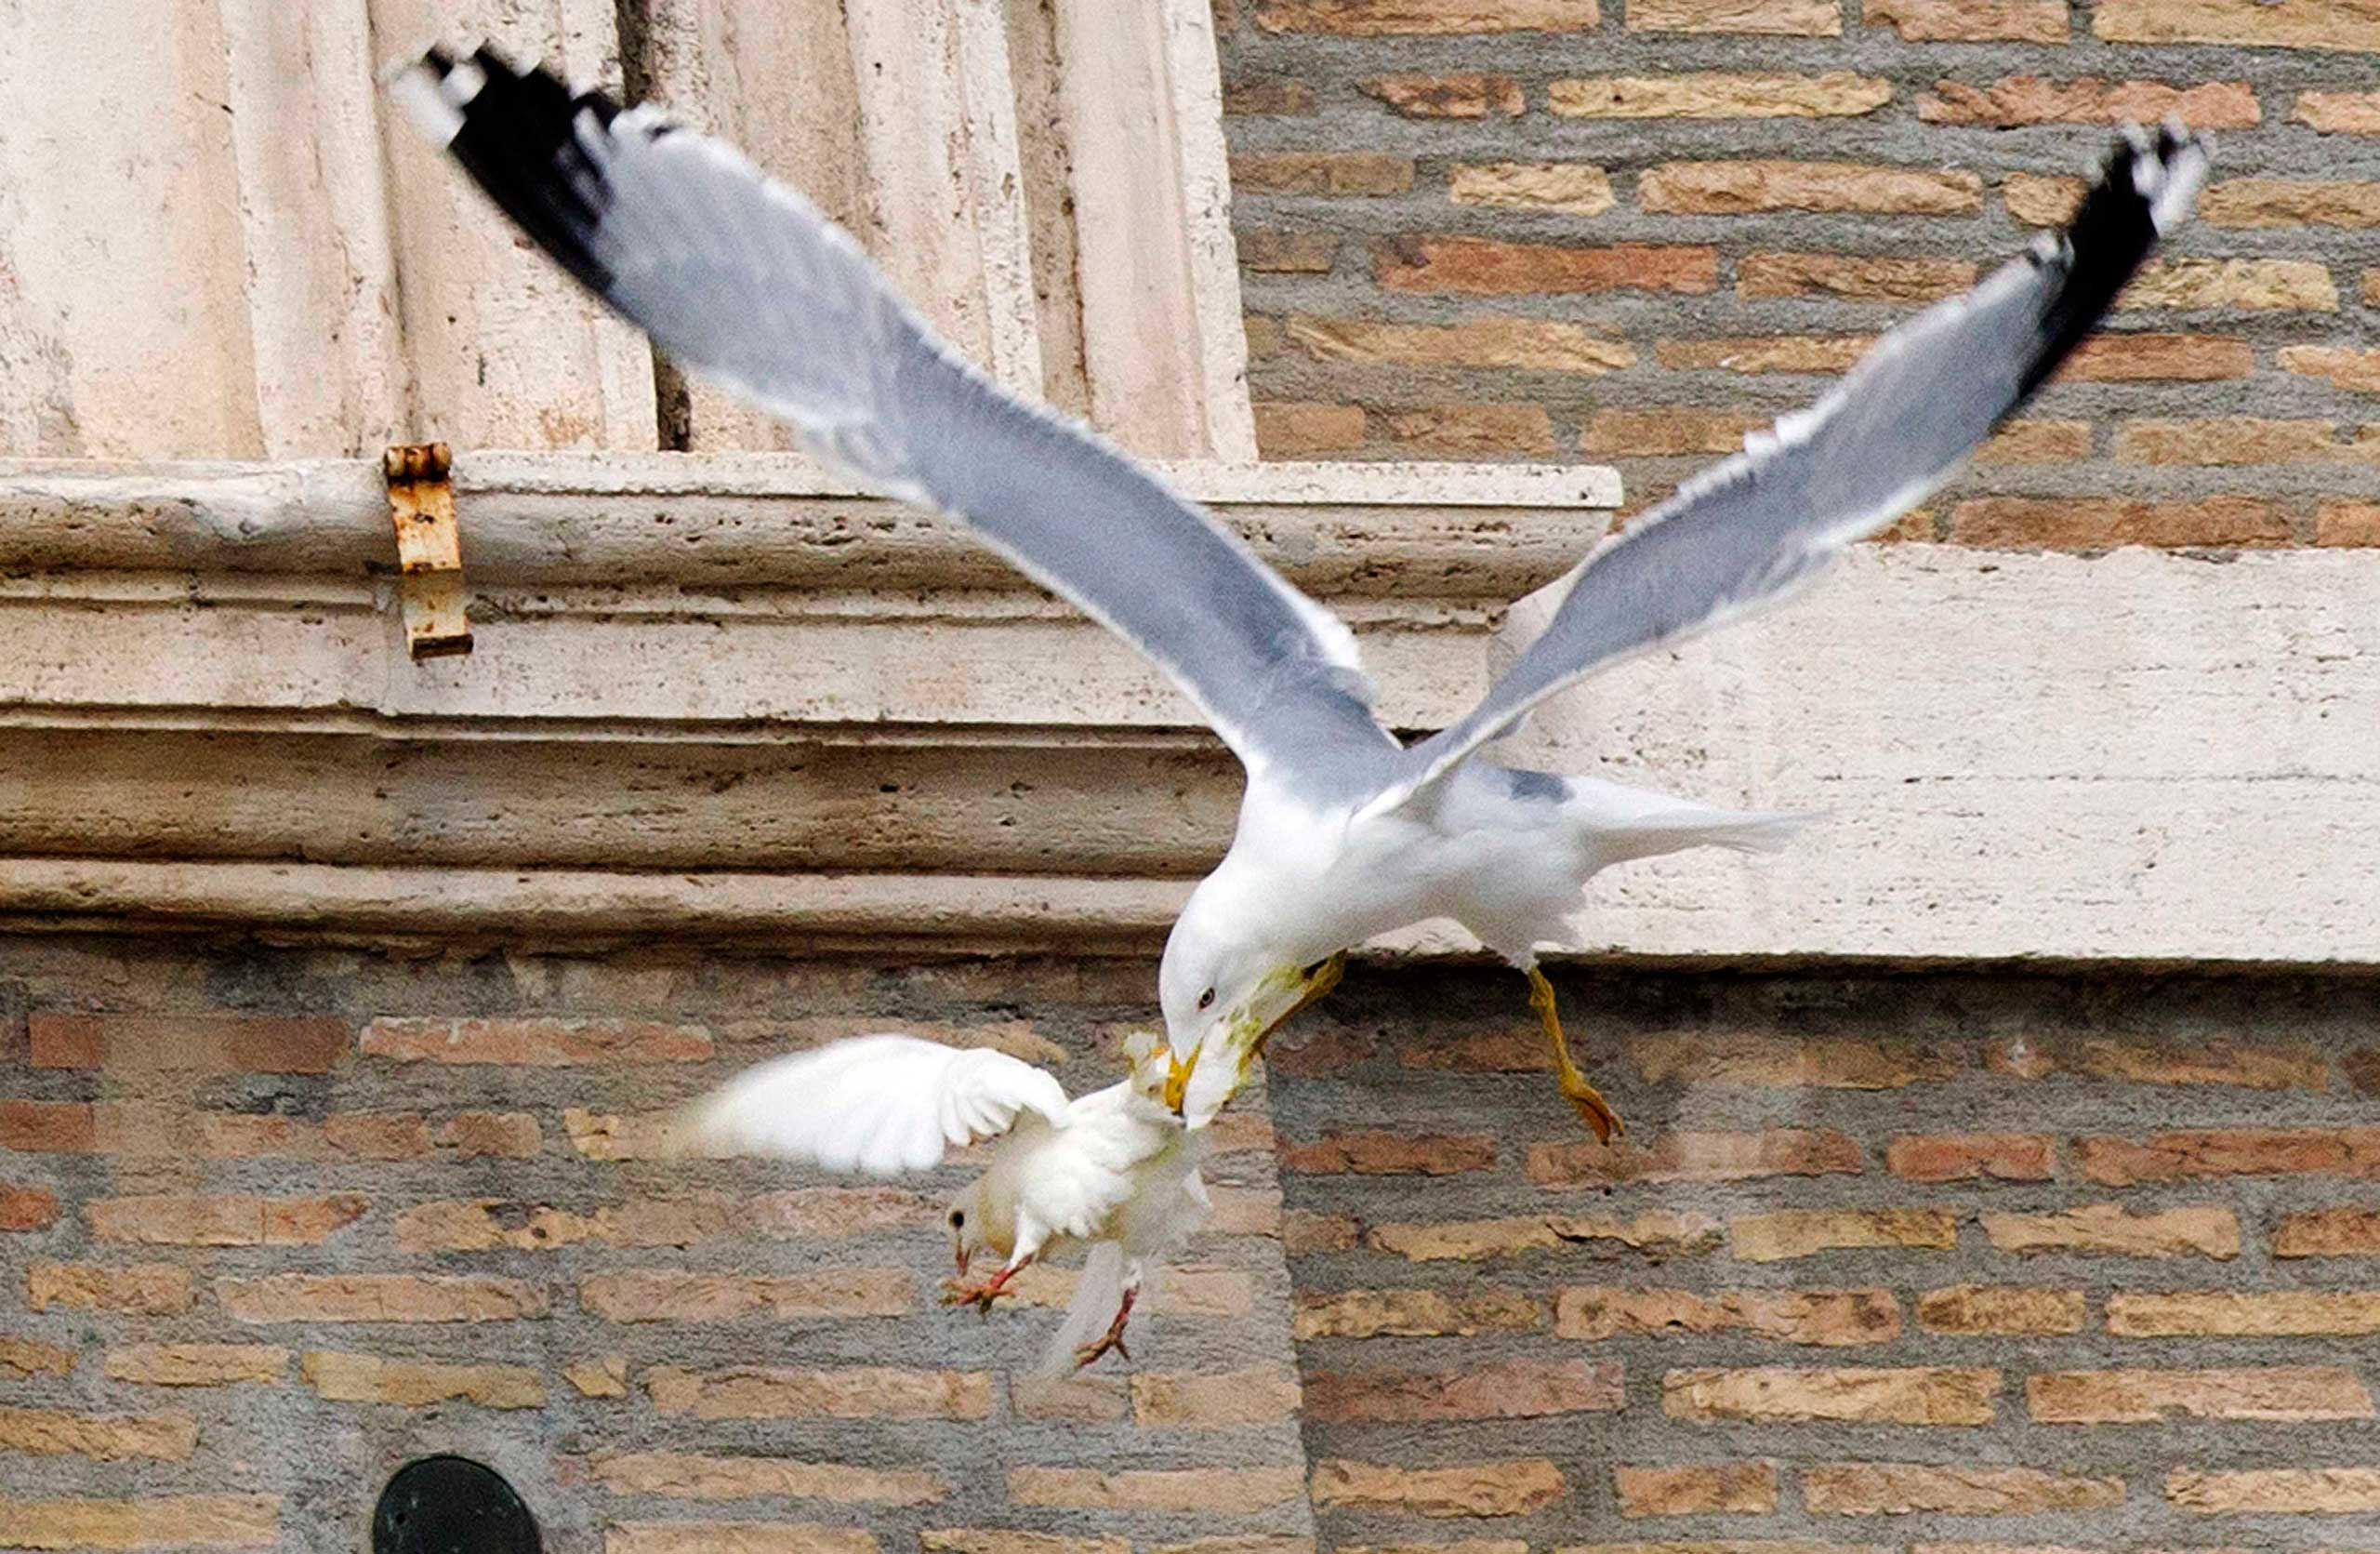 A dove released during an Angelus prayer conducted by Pope Francis, is attacked by a seagull in Saint Peter's square at the Vatican Jan. 26, 2014.